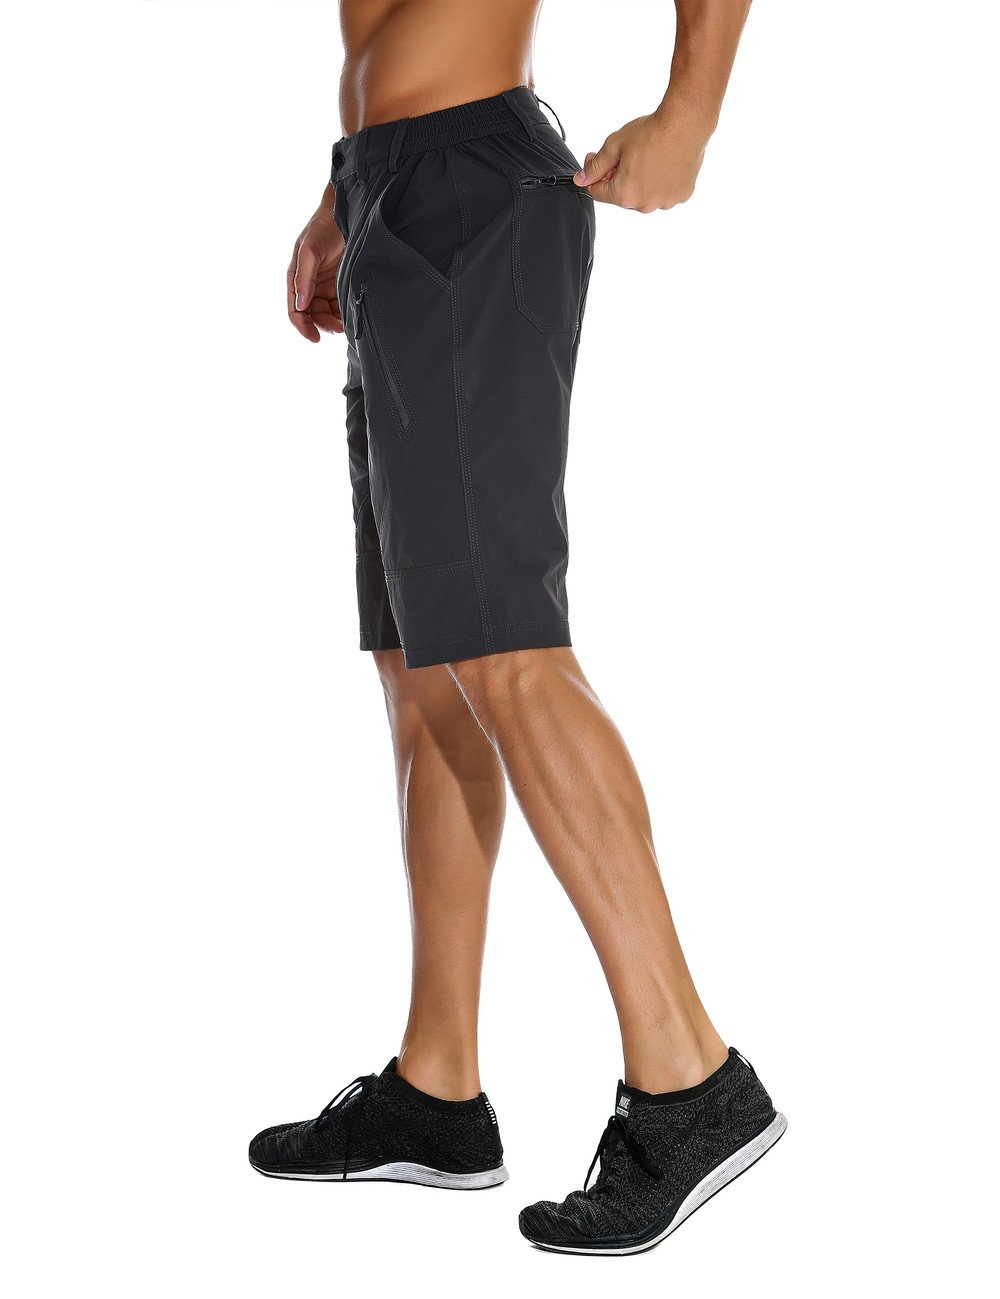 Unitop Mens Lightweight Breathable Soft Quick Dry Hiking Shorts UT7115003